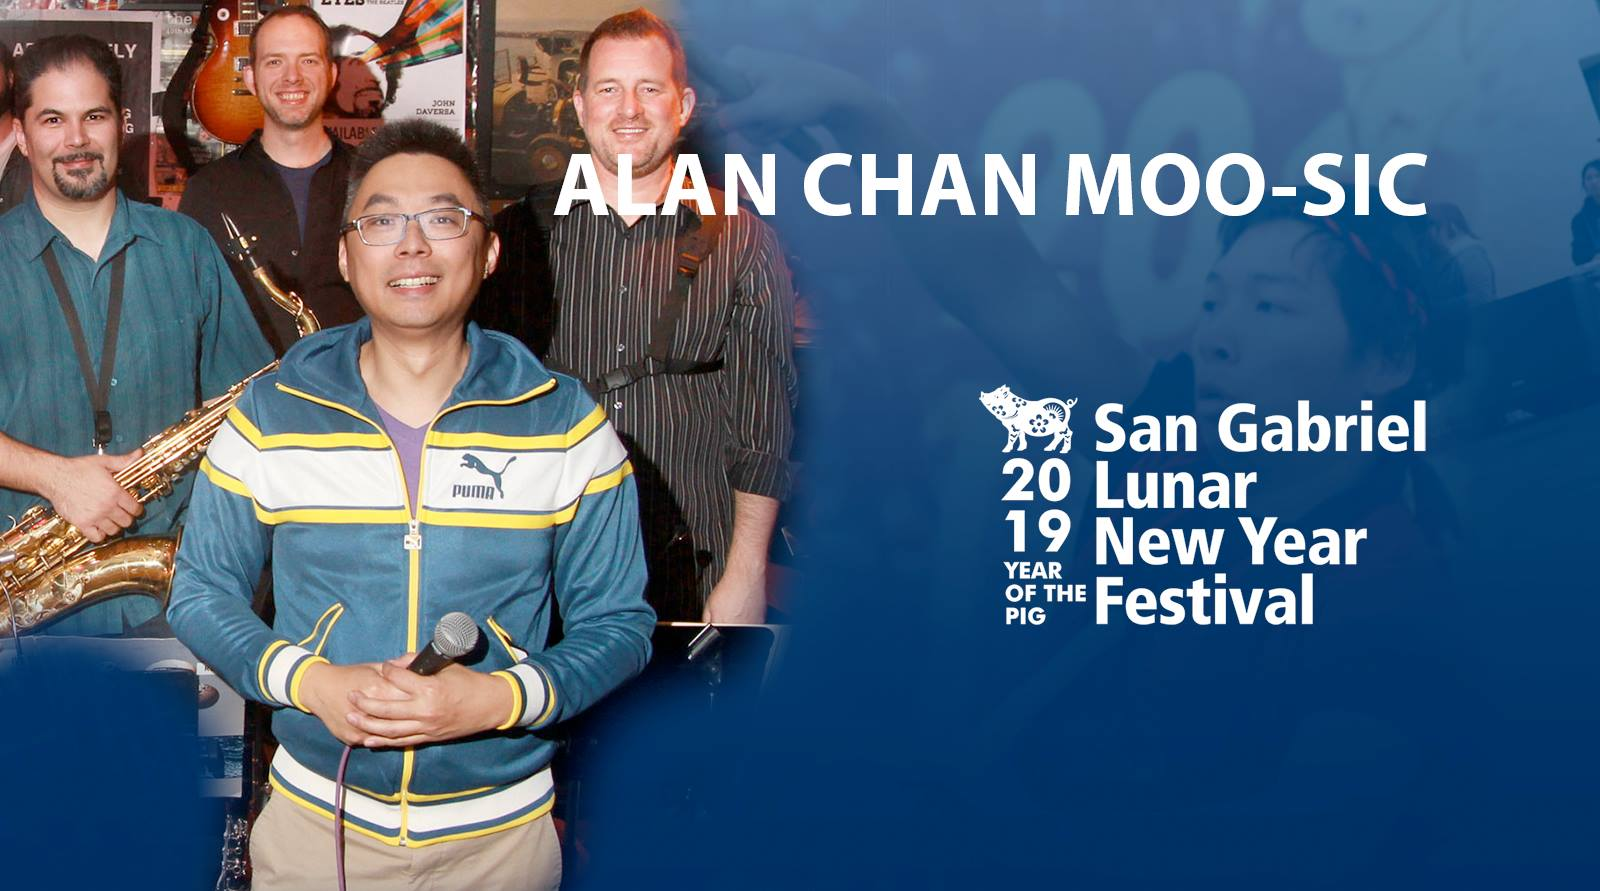 Alan Chan Moo-sic Group